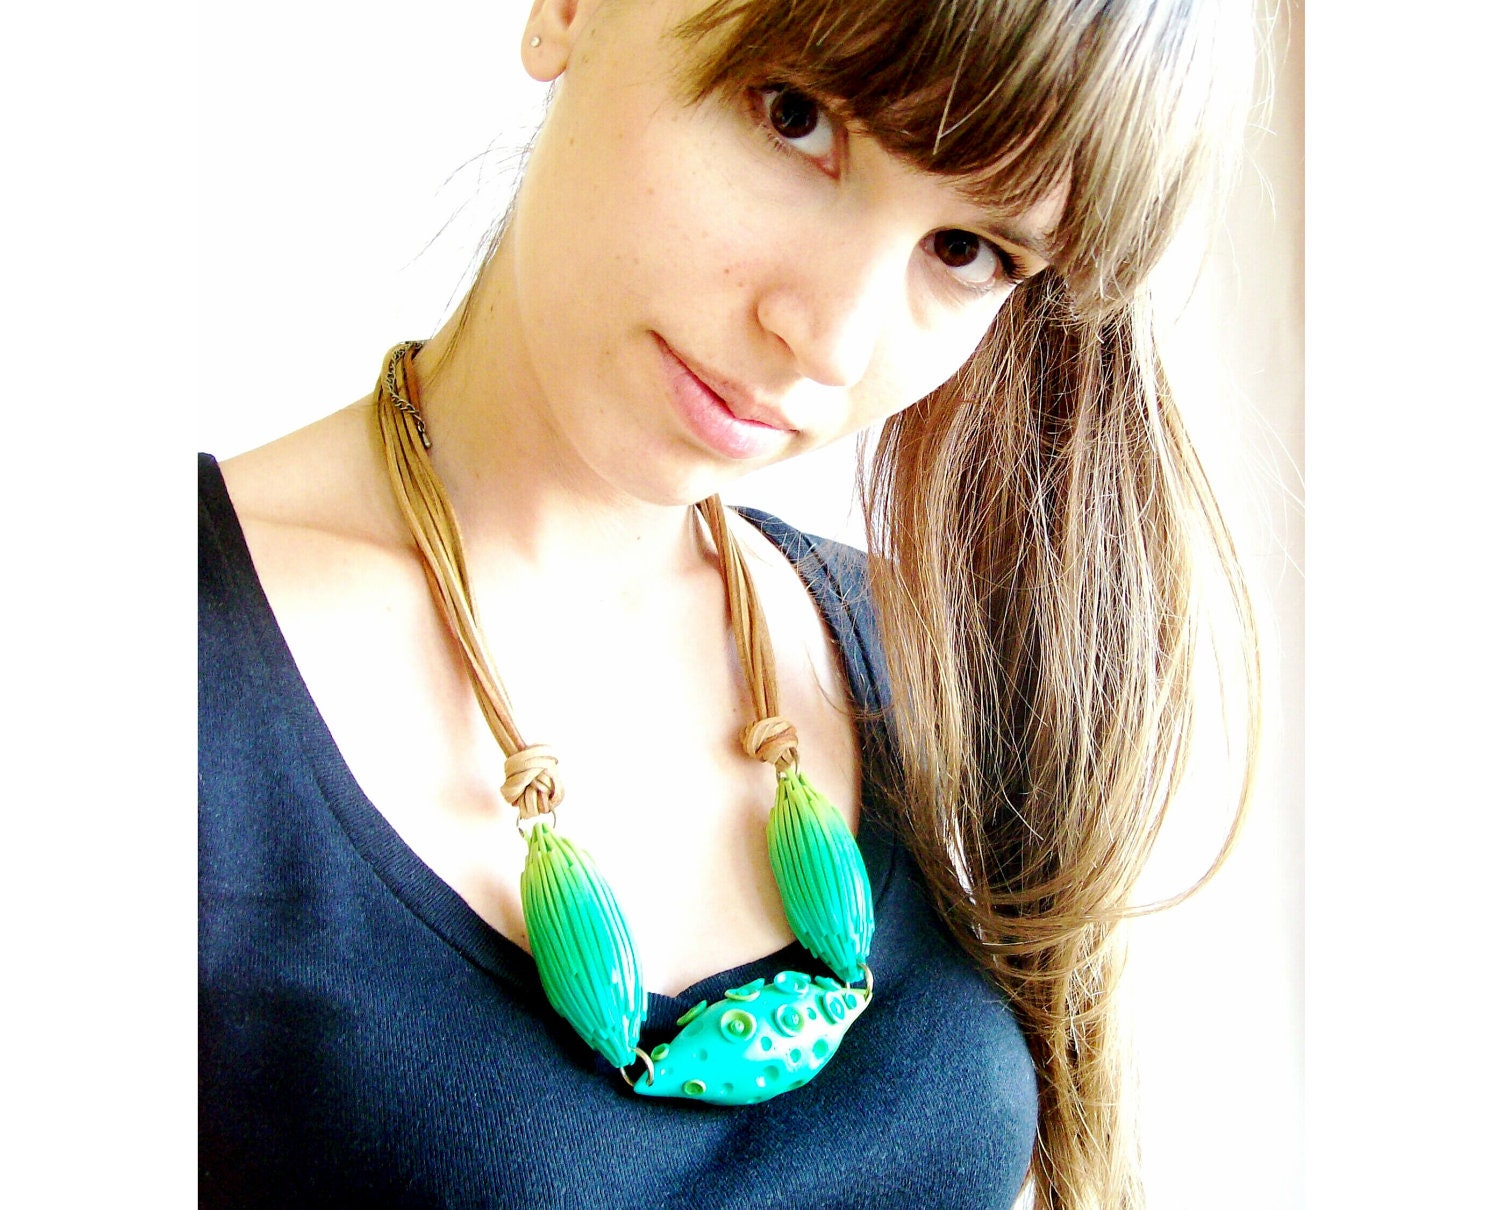 Bold chunky statement necklace clay green and aqua 'Sea Creatures' pods large beads quirky polymer clay organic shapes necklace - HunkiiDorii